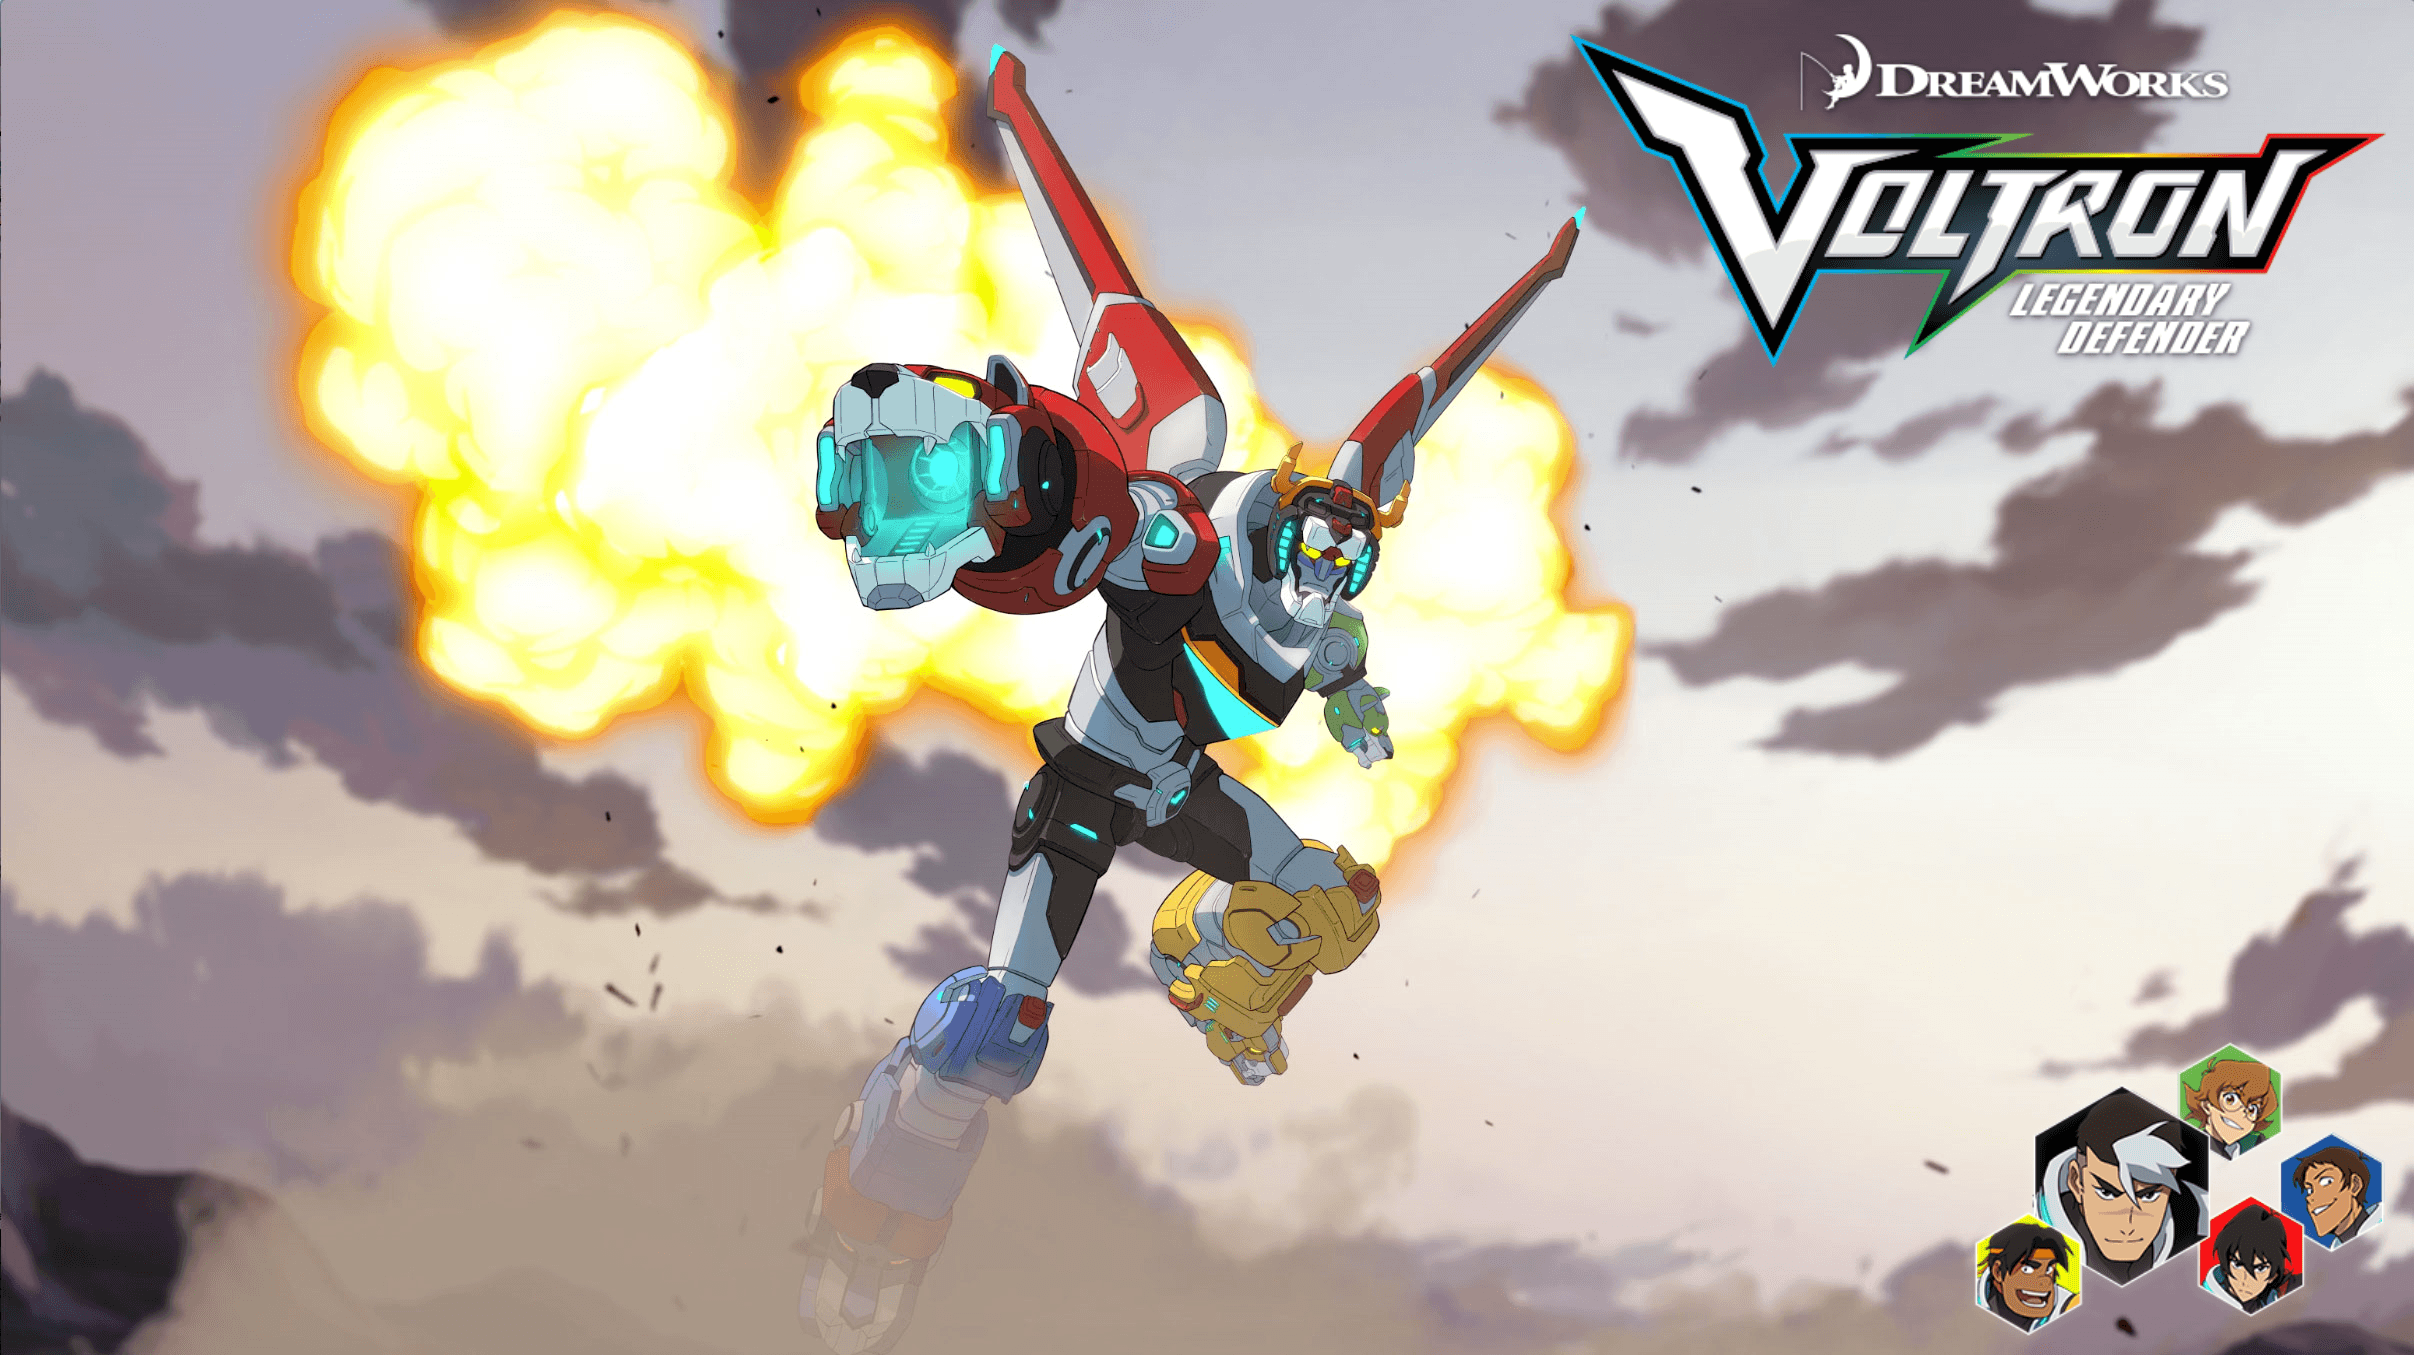 I made a wallpaper for Legendary Defender! : Voltron